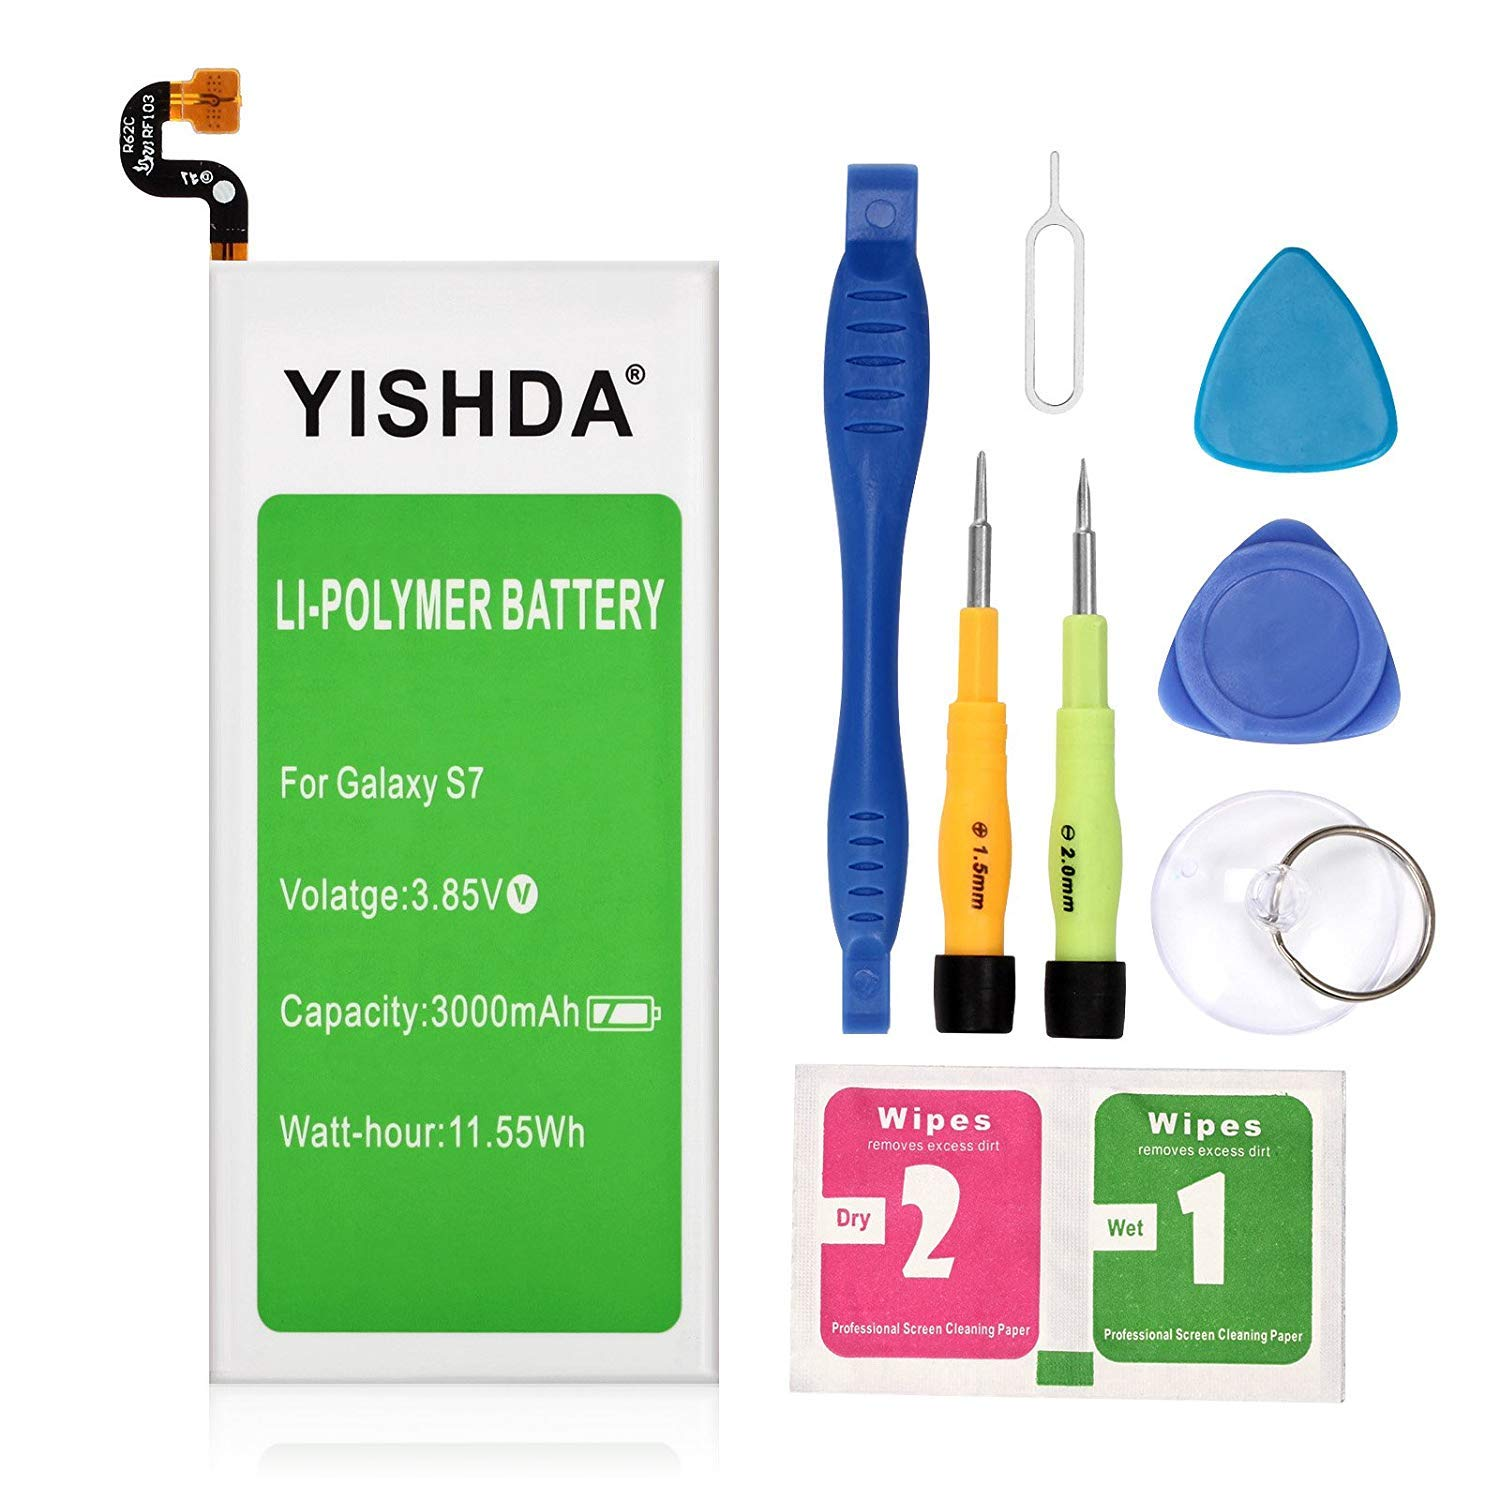 Galaxy S7 Battery | YISHDA 3000mAh Replacement EB-BG930ABE Battery for Samsung Galaxy S7 SM-G930 G930V G930A G930T G930P G930F with Repair Tool Kit| Samsung S7 Spare Battery [18 Month Warranty] by YISHDA